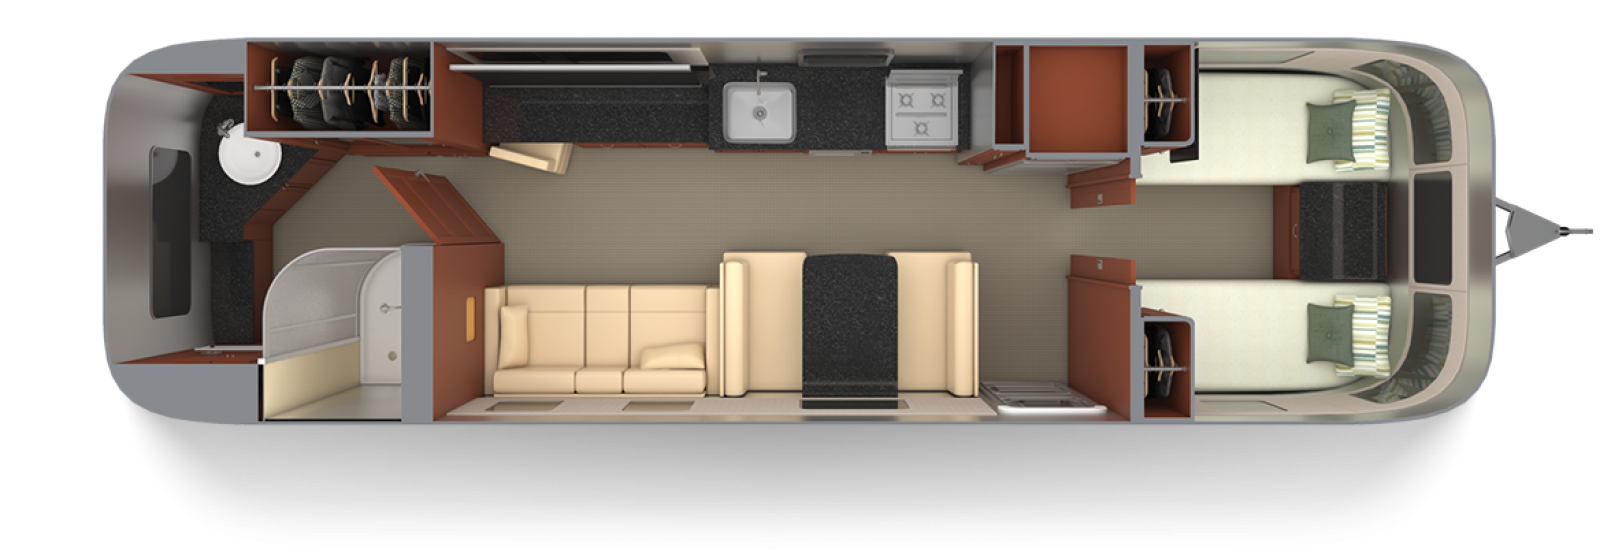 Airstream-Classic-33FB-Twin-Mocha-Cherry-with-Macadamia-Floor-Plan